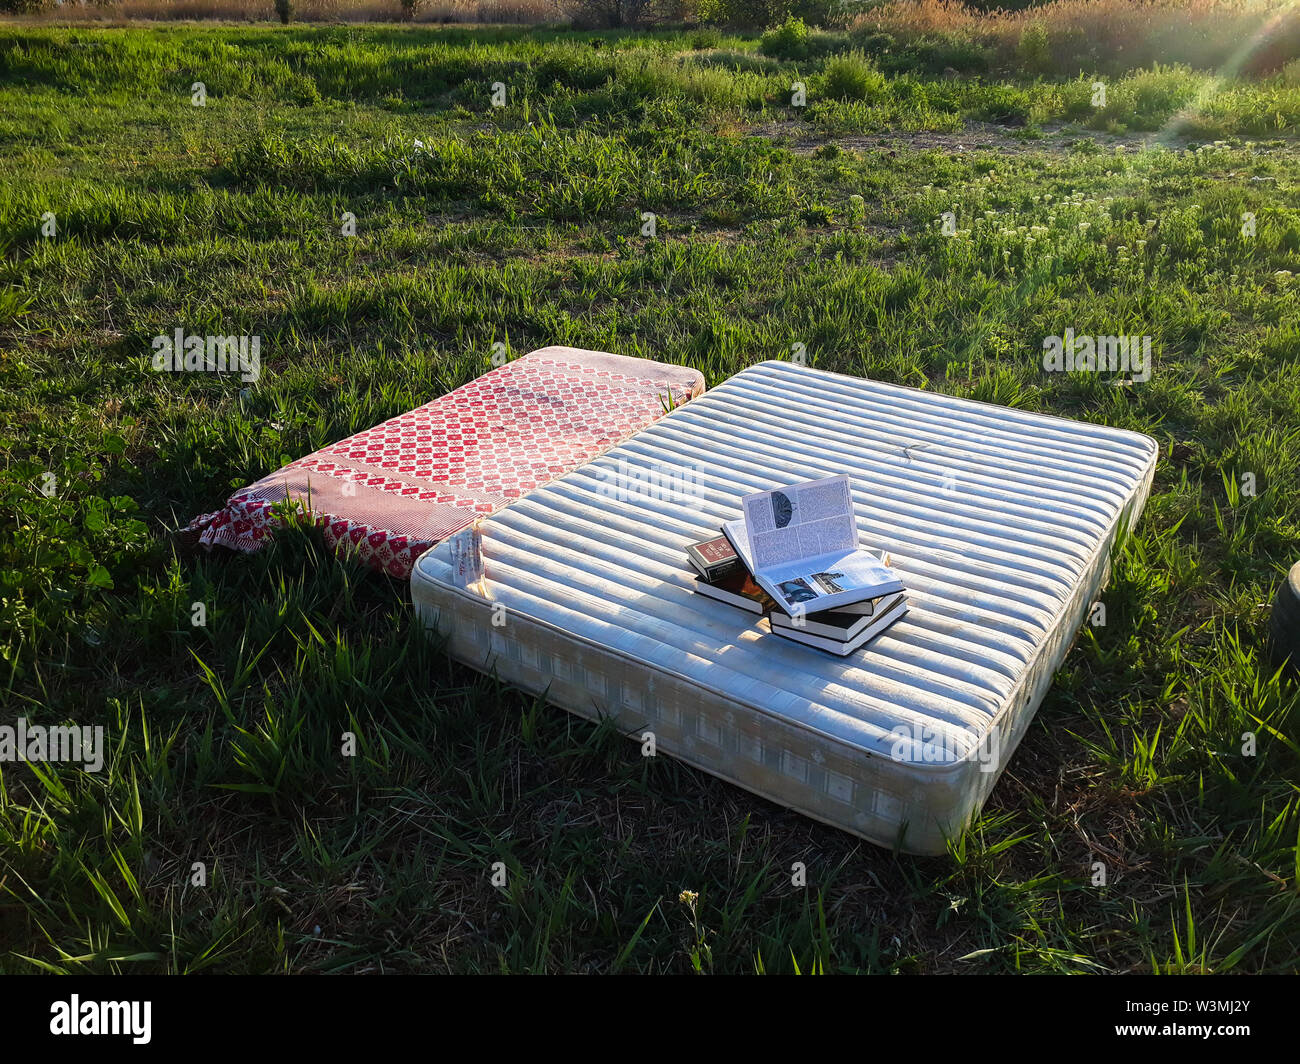 Valencia, Spain - March 30, 2019: An old abandoned mattresses in the suburbs serve to rest the homeless, who use them to read old books. - Stock Image